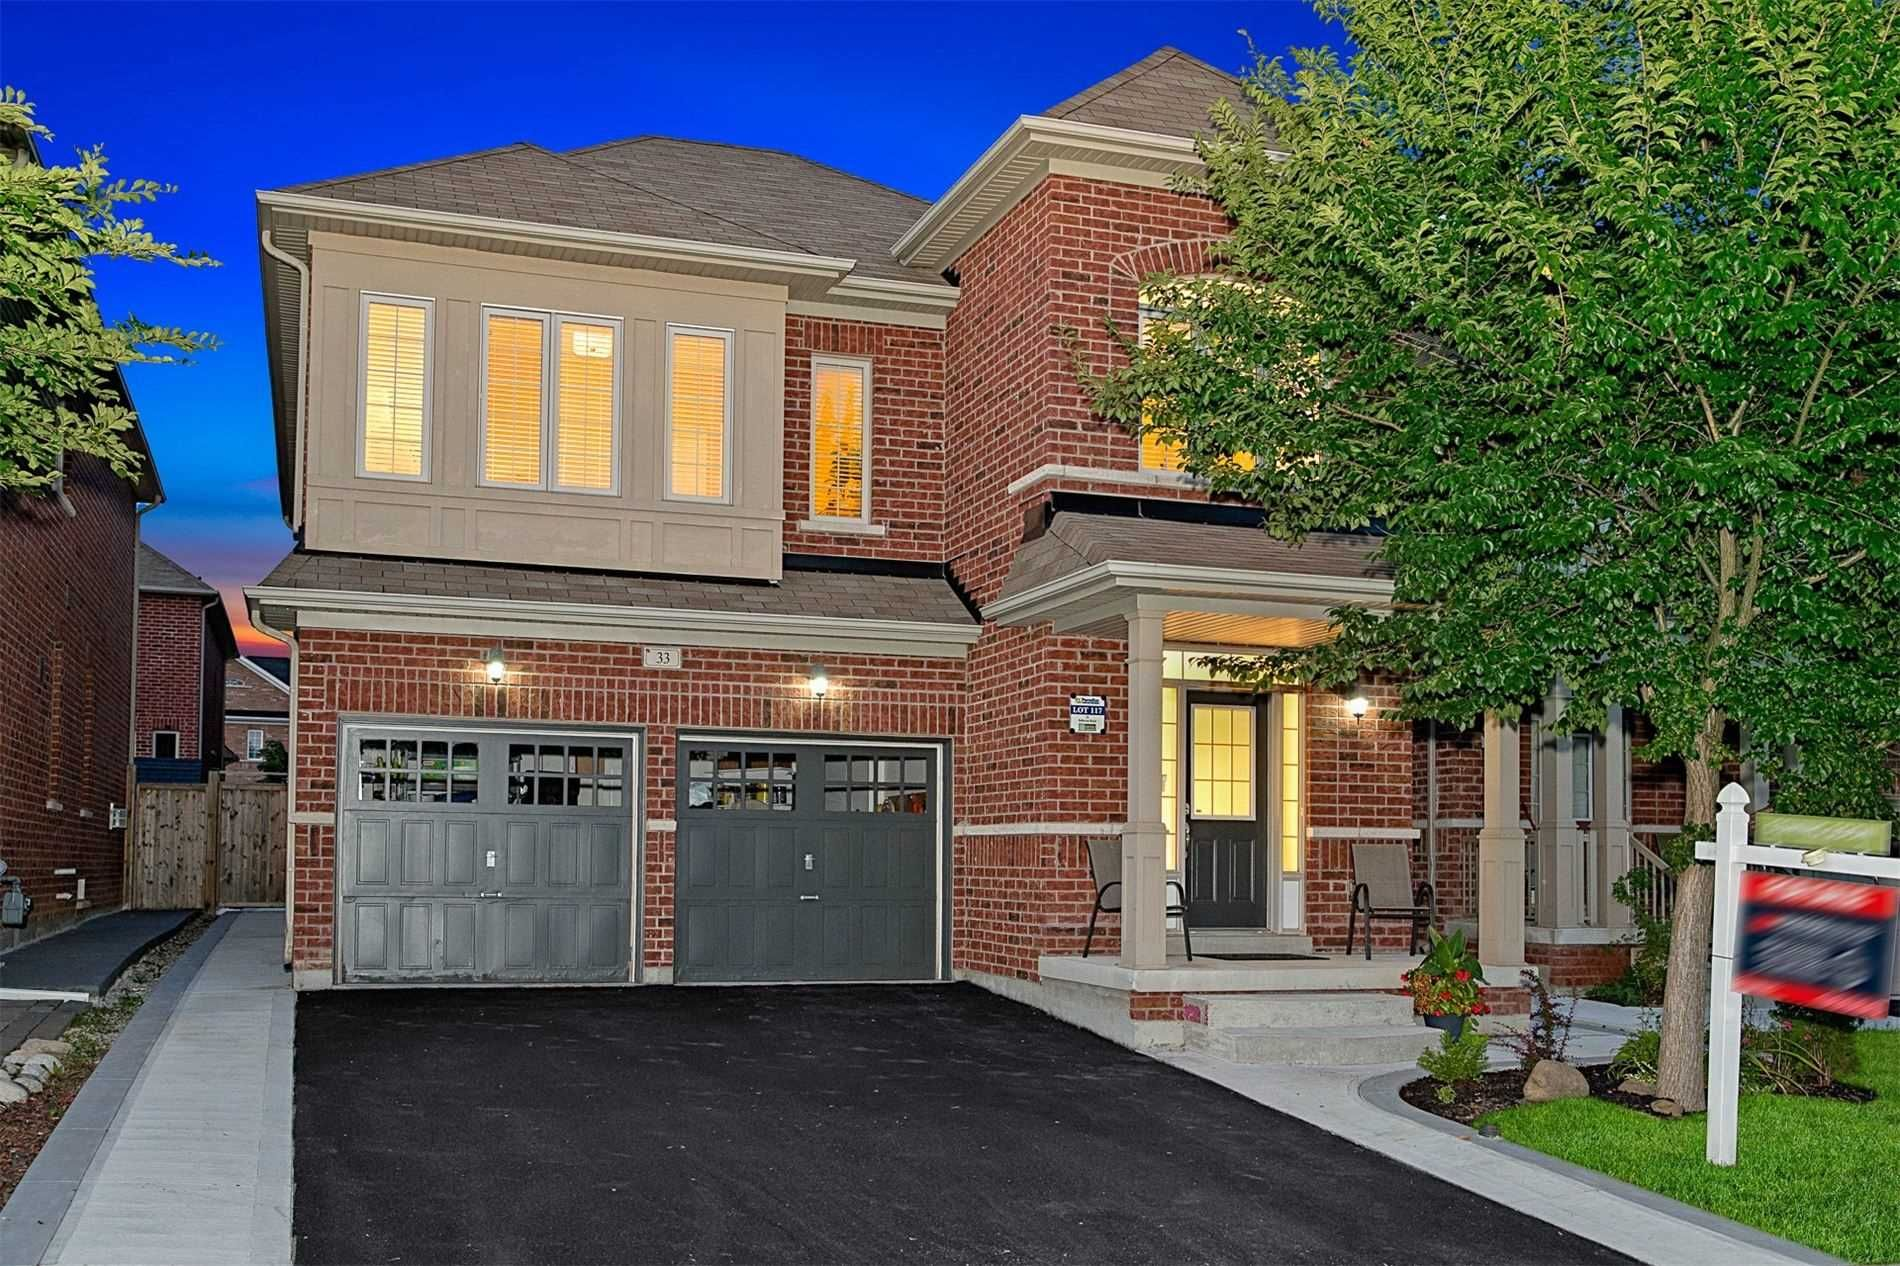 Main Photo: 33 Bellcrest Road in Brampton: Credit Valley House (2-Storey) for sale : MLS®# W5350066